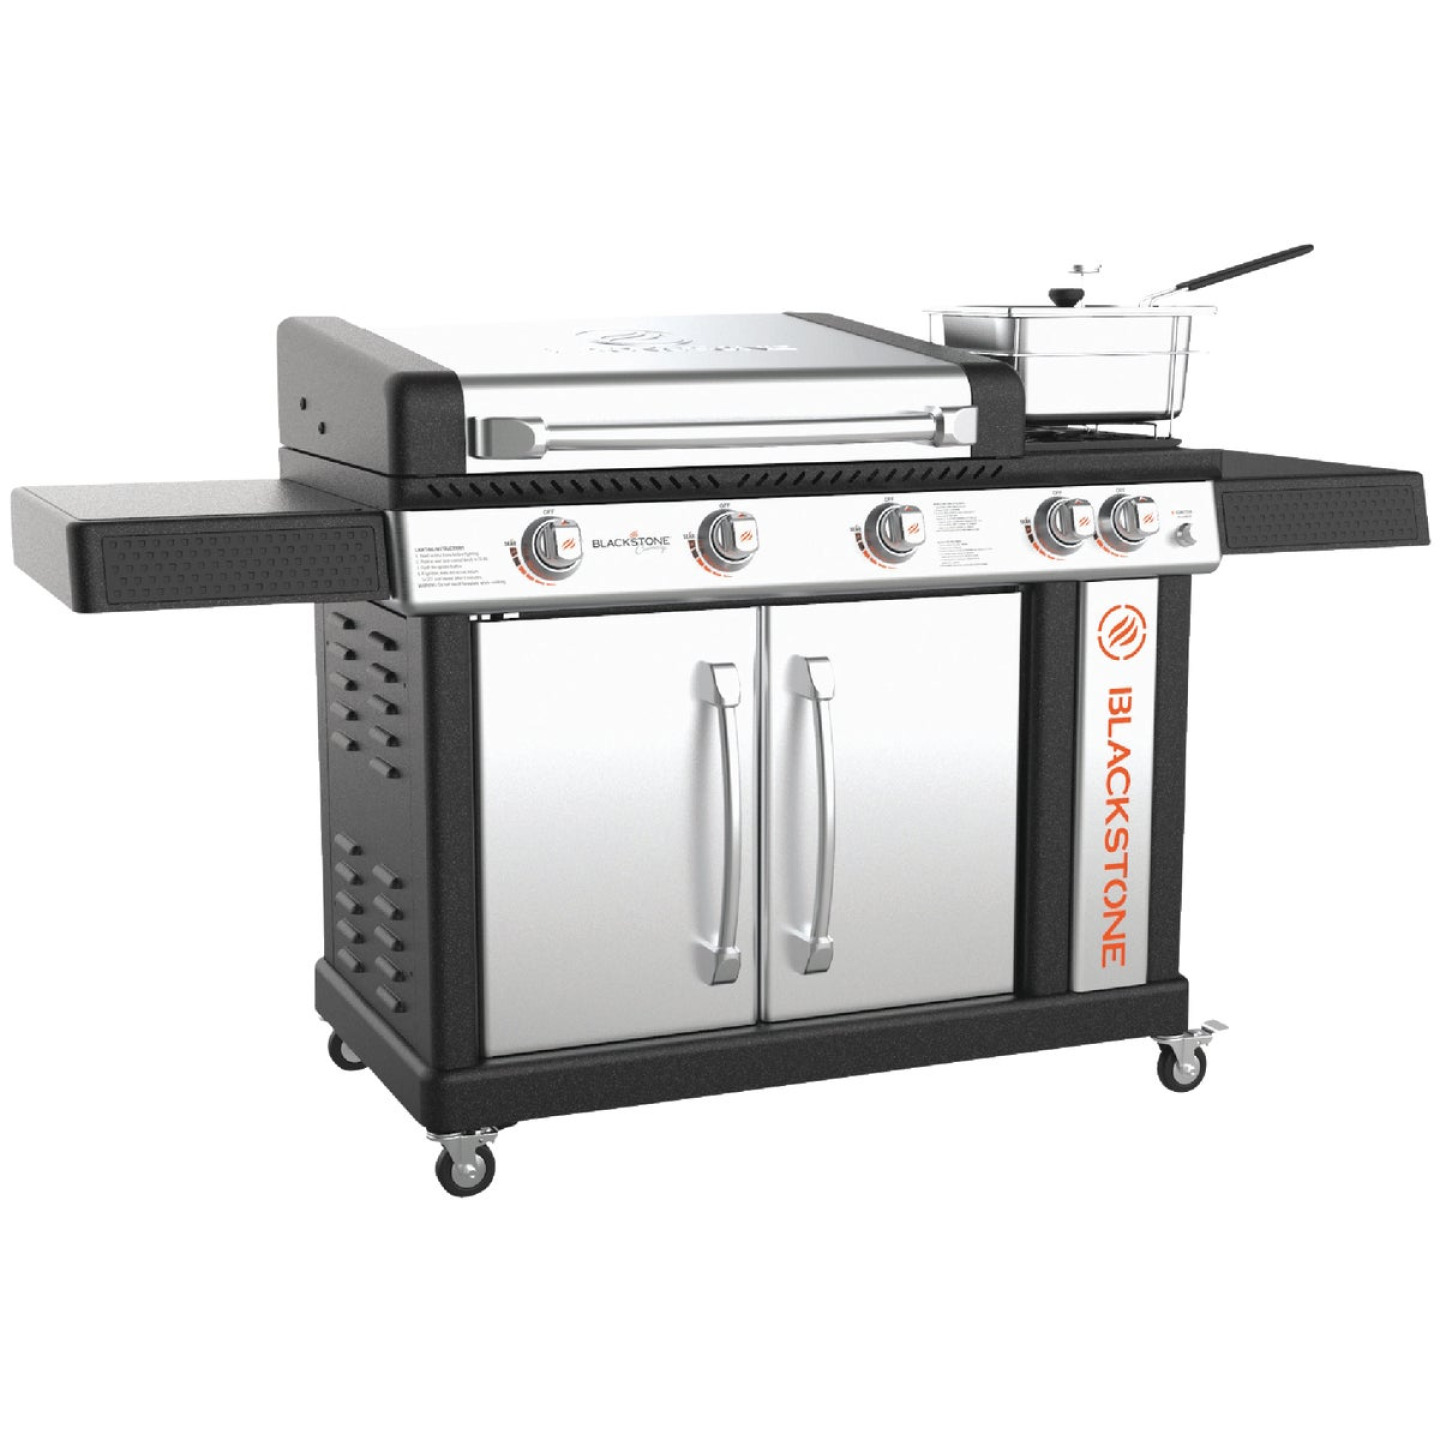 Blackstone Culinary Pro 5-Burner Black/Stainless Steel 16,000 BTU LP Gas Griddle Image 1